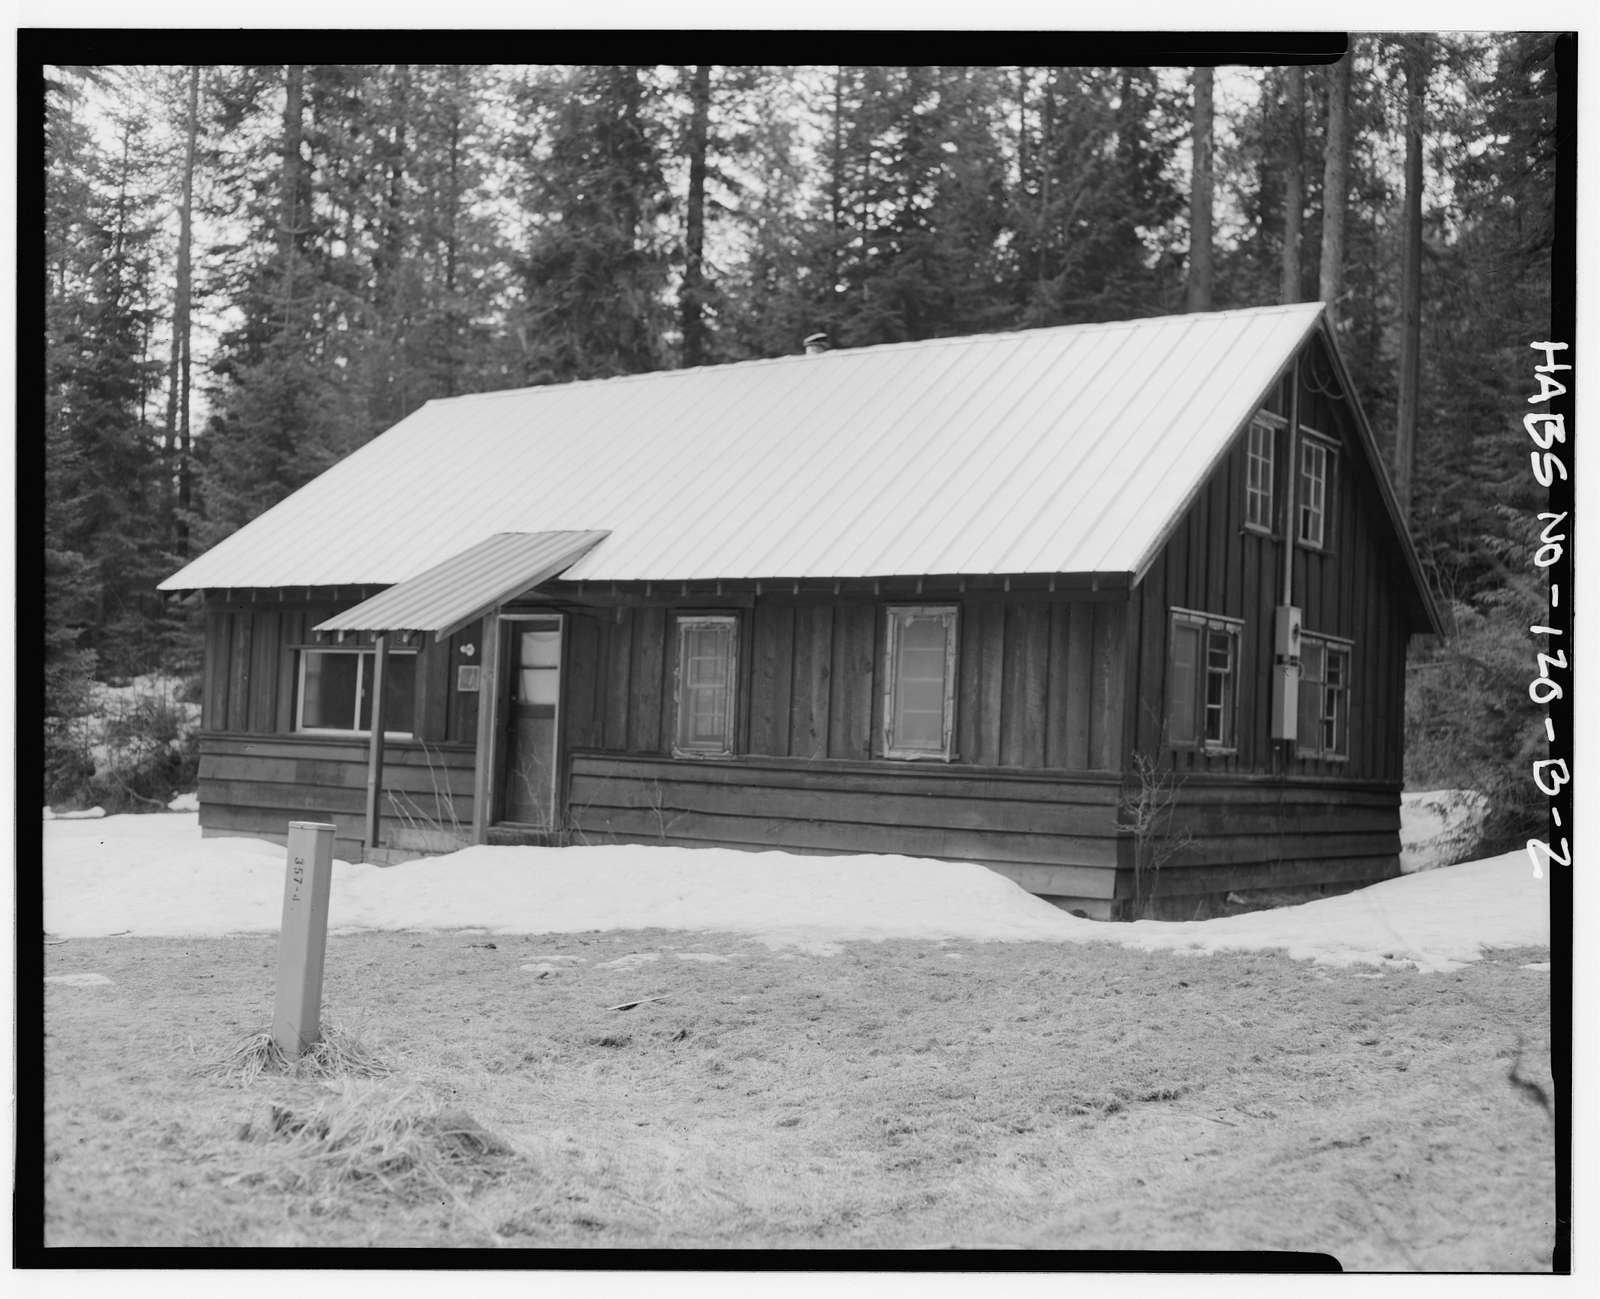 Clarkia Ranger Station, Cottage No. 2, West of Highway 3, .5 mile north of Clarkia, Clarkia, Shoshone County, ID